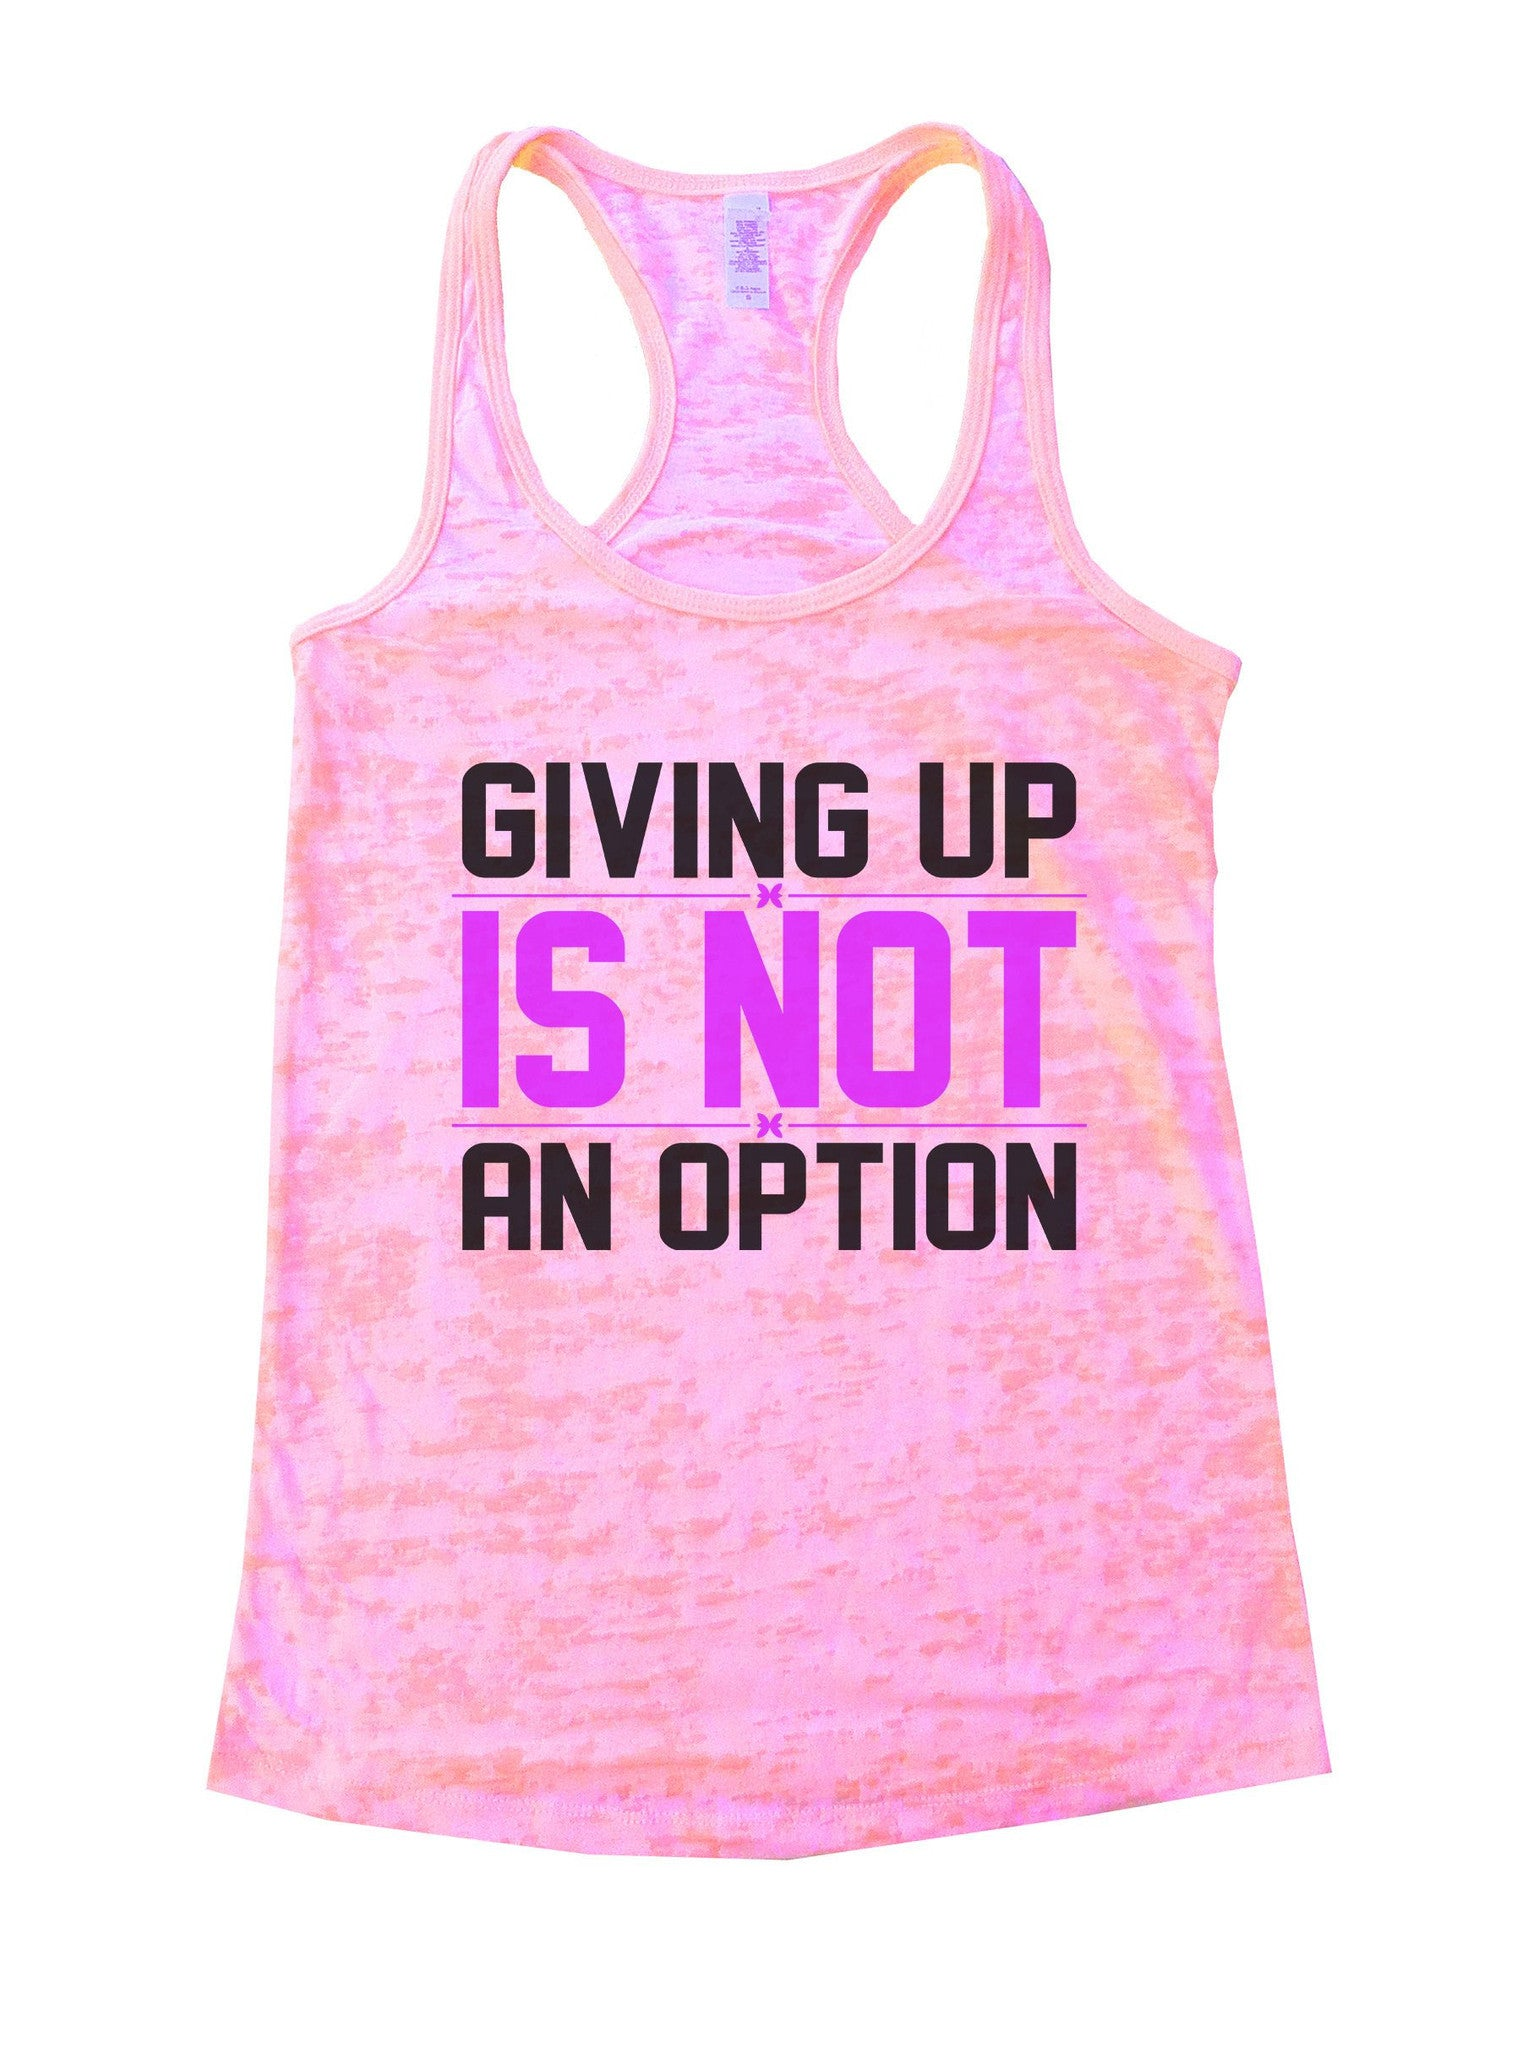 Giving Up Is Not An Option Burnout Tank Top By BurnoutTankTops.com - 862 - Funny Shirts Tank Tops Burnouts and Triblends  - 1